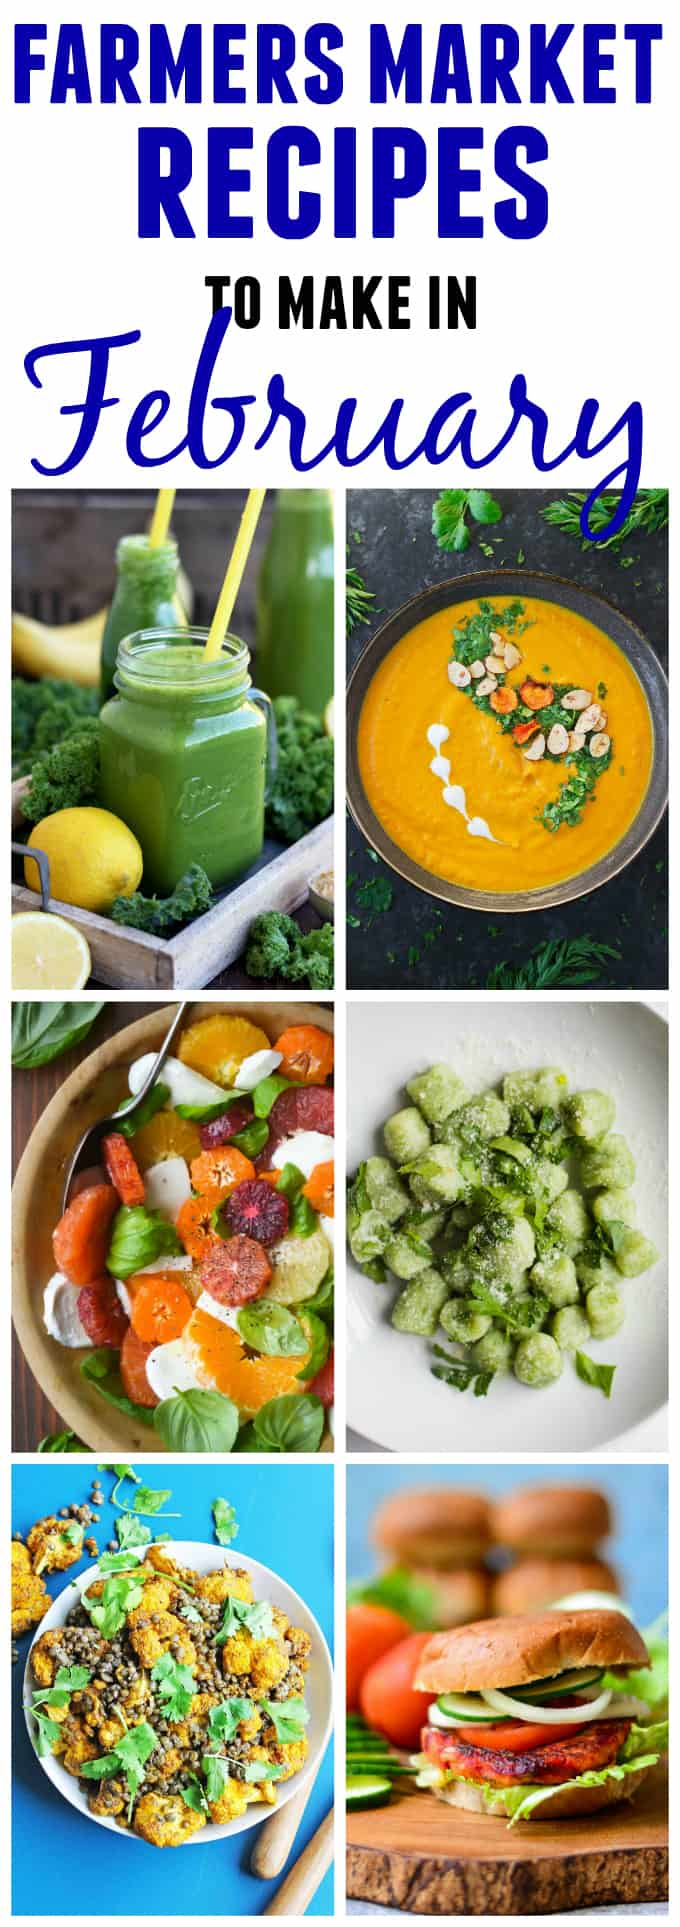 15 Farmers market recipes to make in February! Delicious, winter, (mostly) healthy recipes made with fresh, seasonal produce from your local farmers market or CSA bin. Eat local!